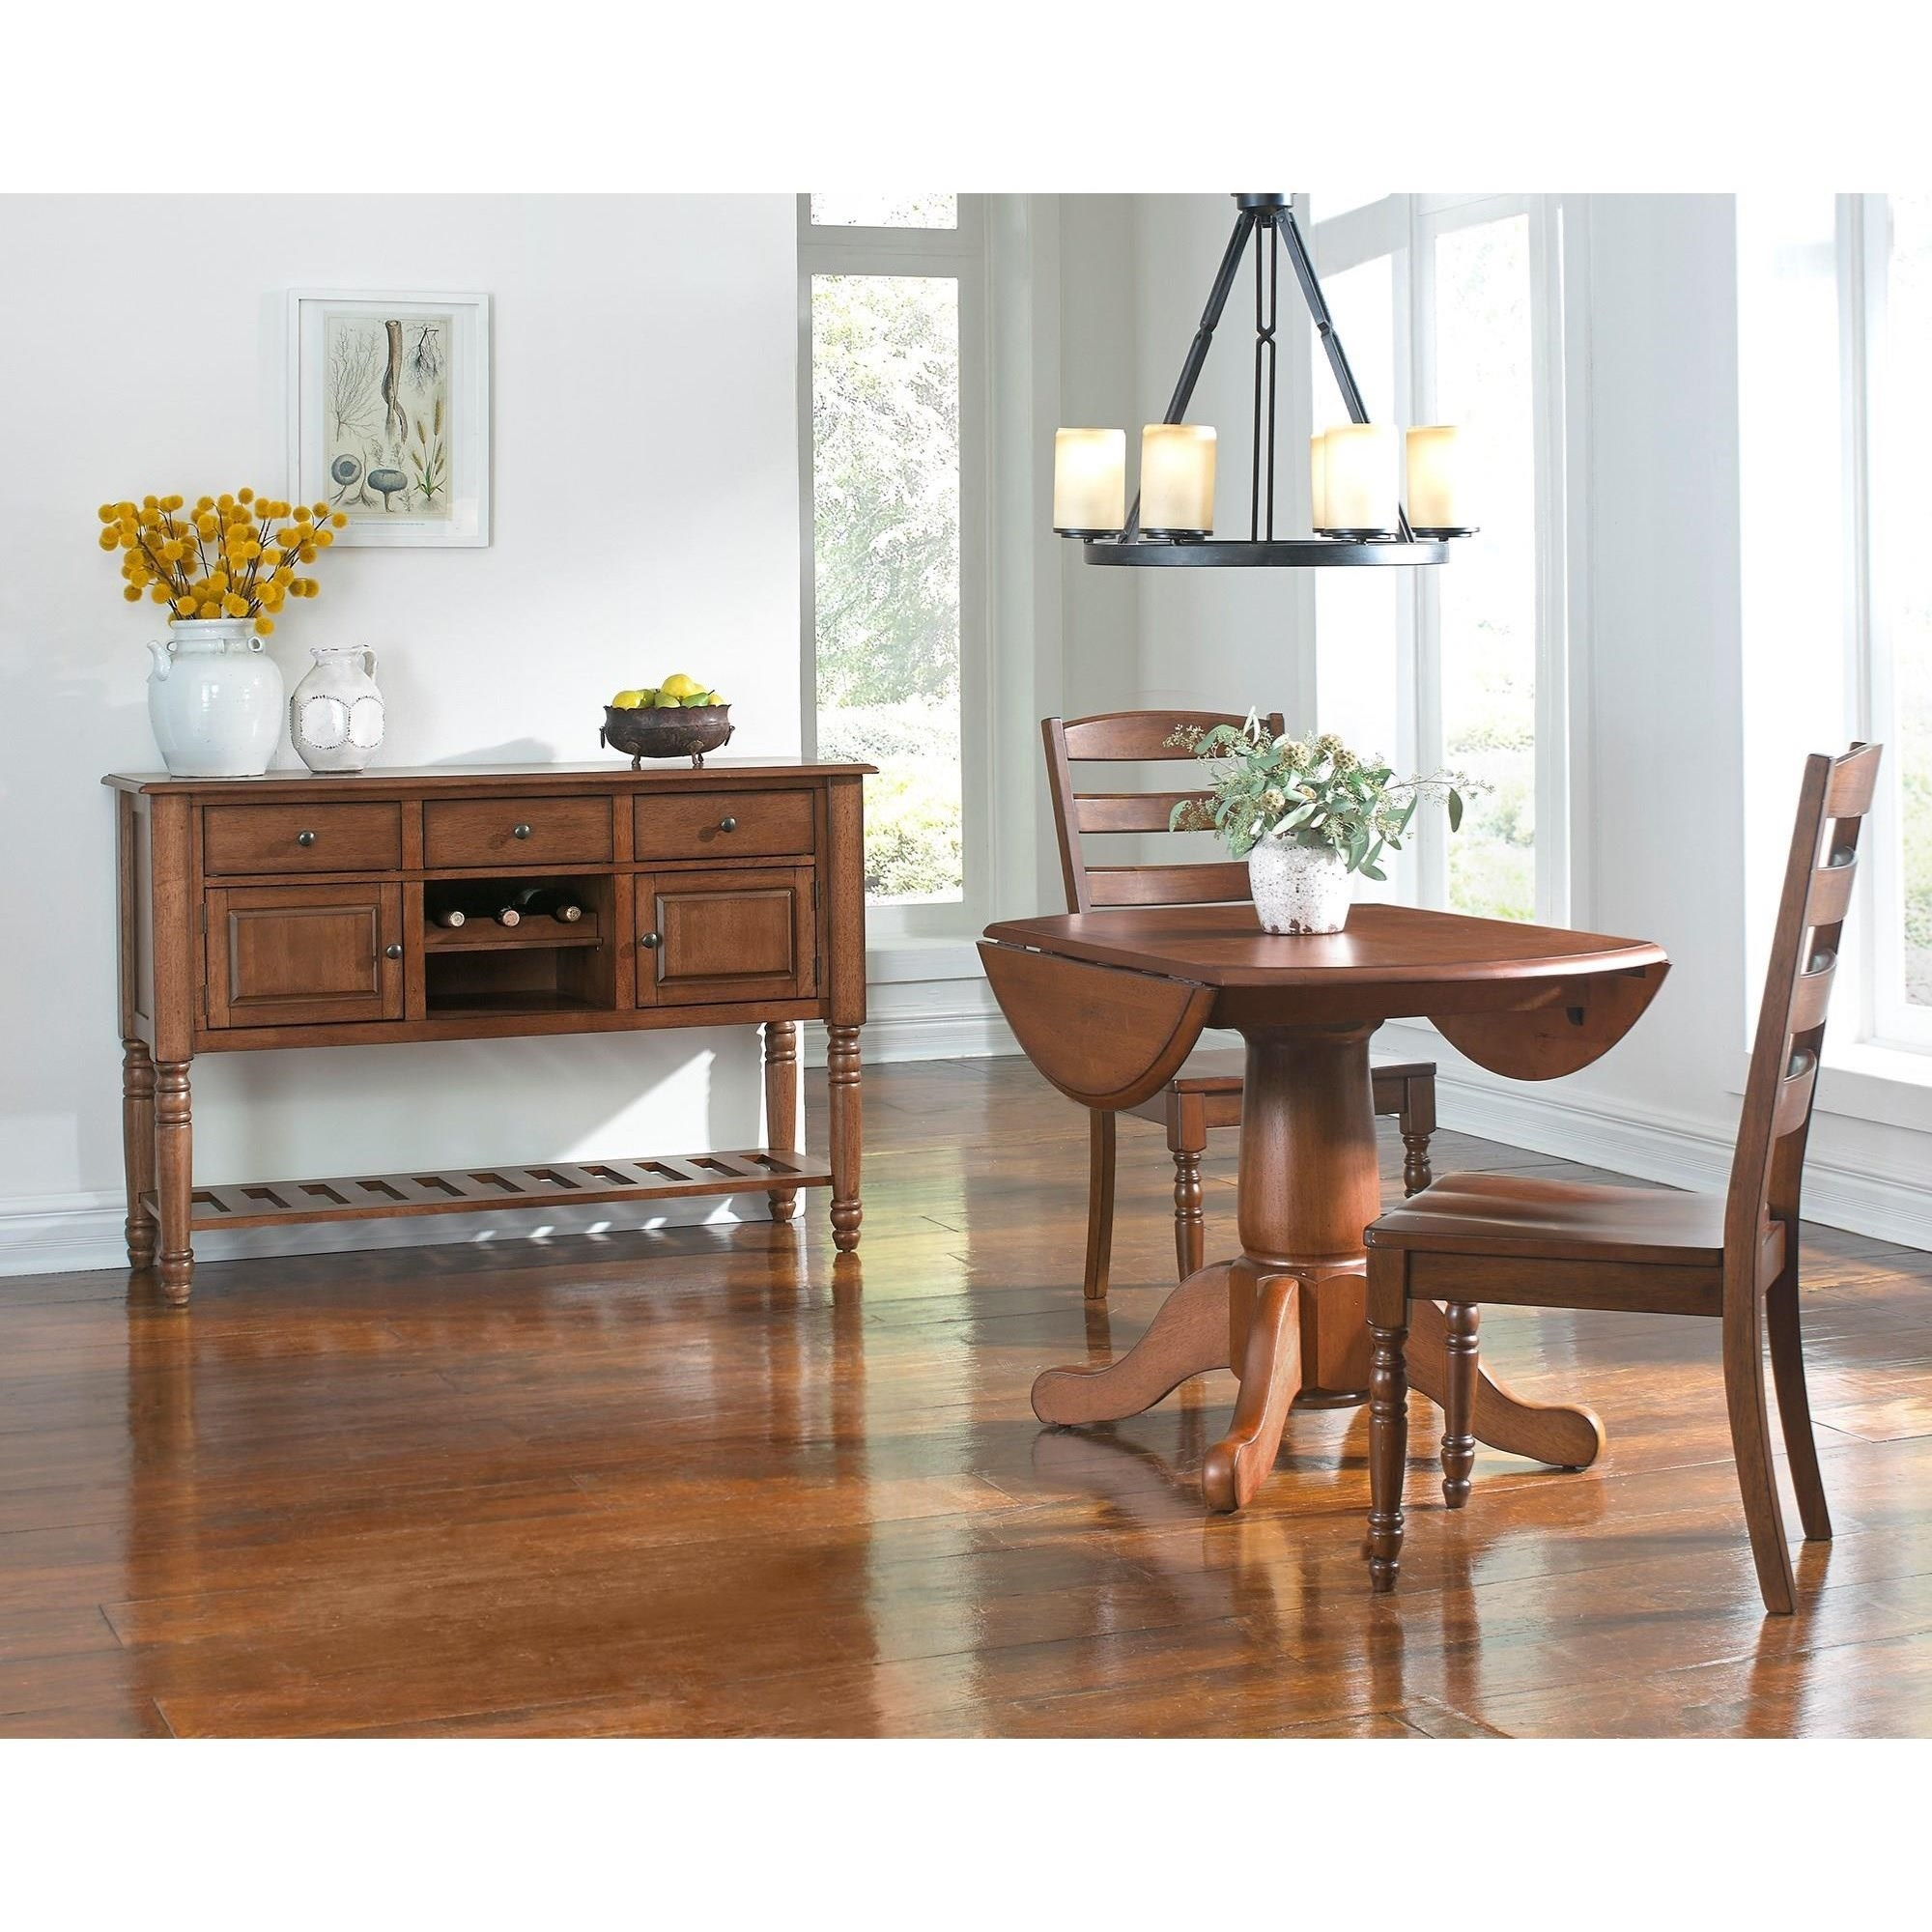 Aamerica Roanoke Casual Dining Room Group Wayside Furniture Casual Dining Room Groups